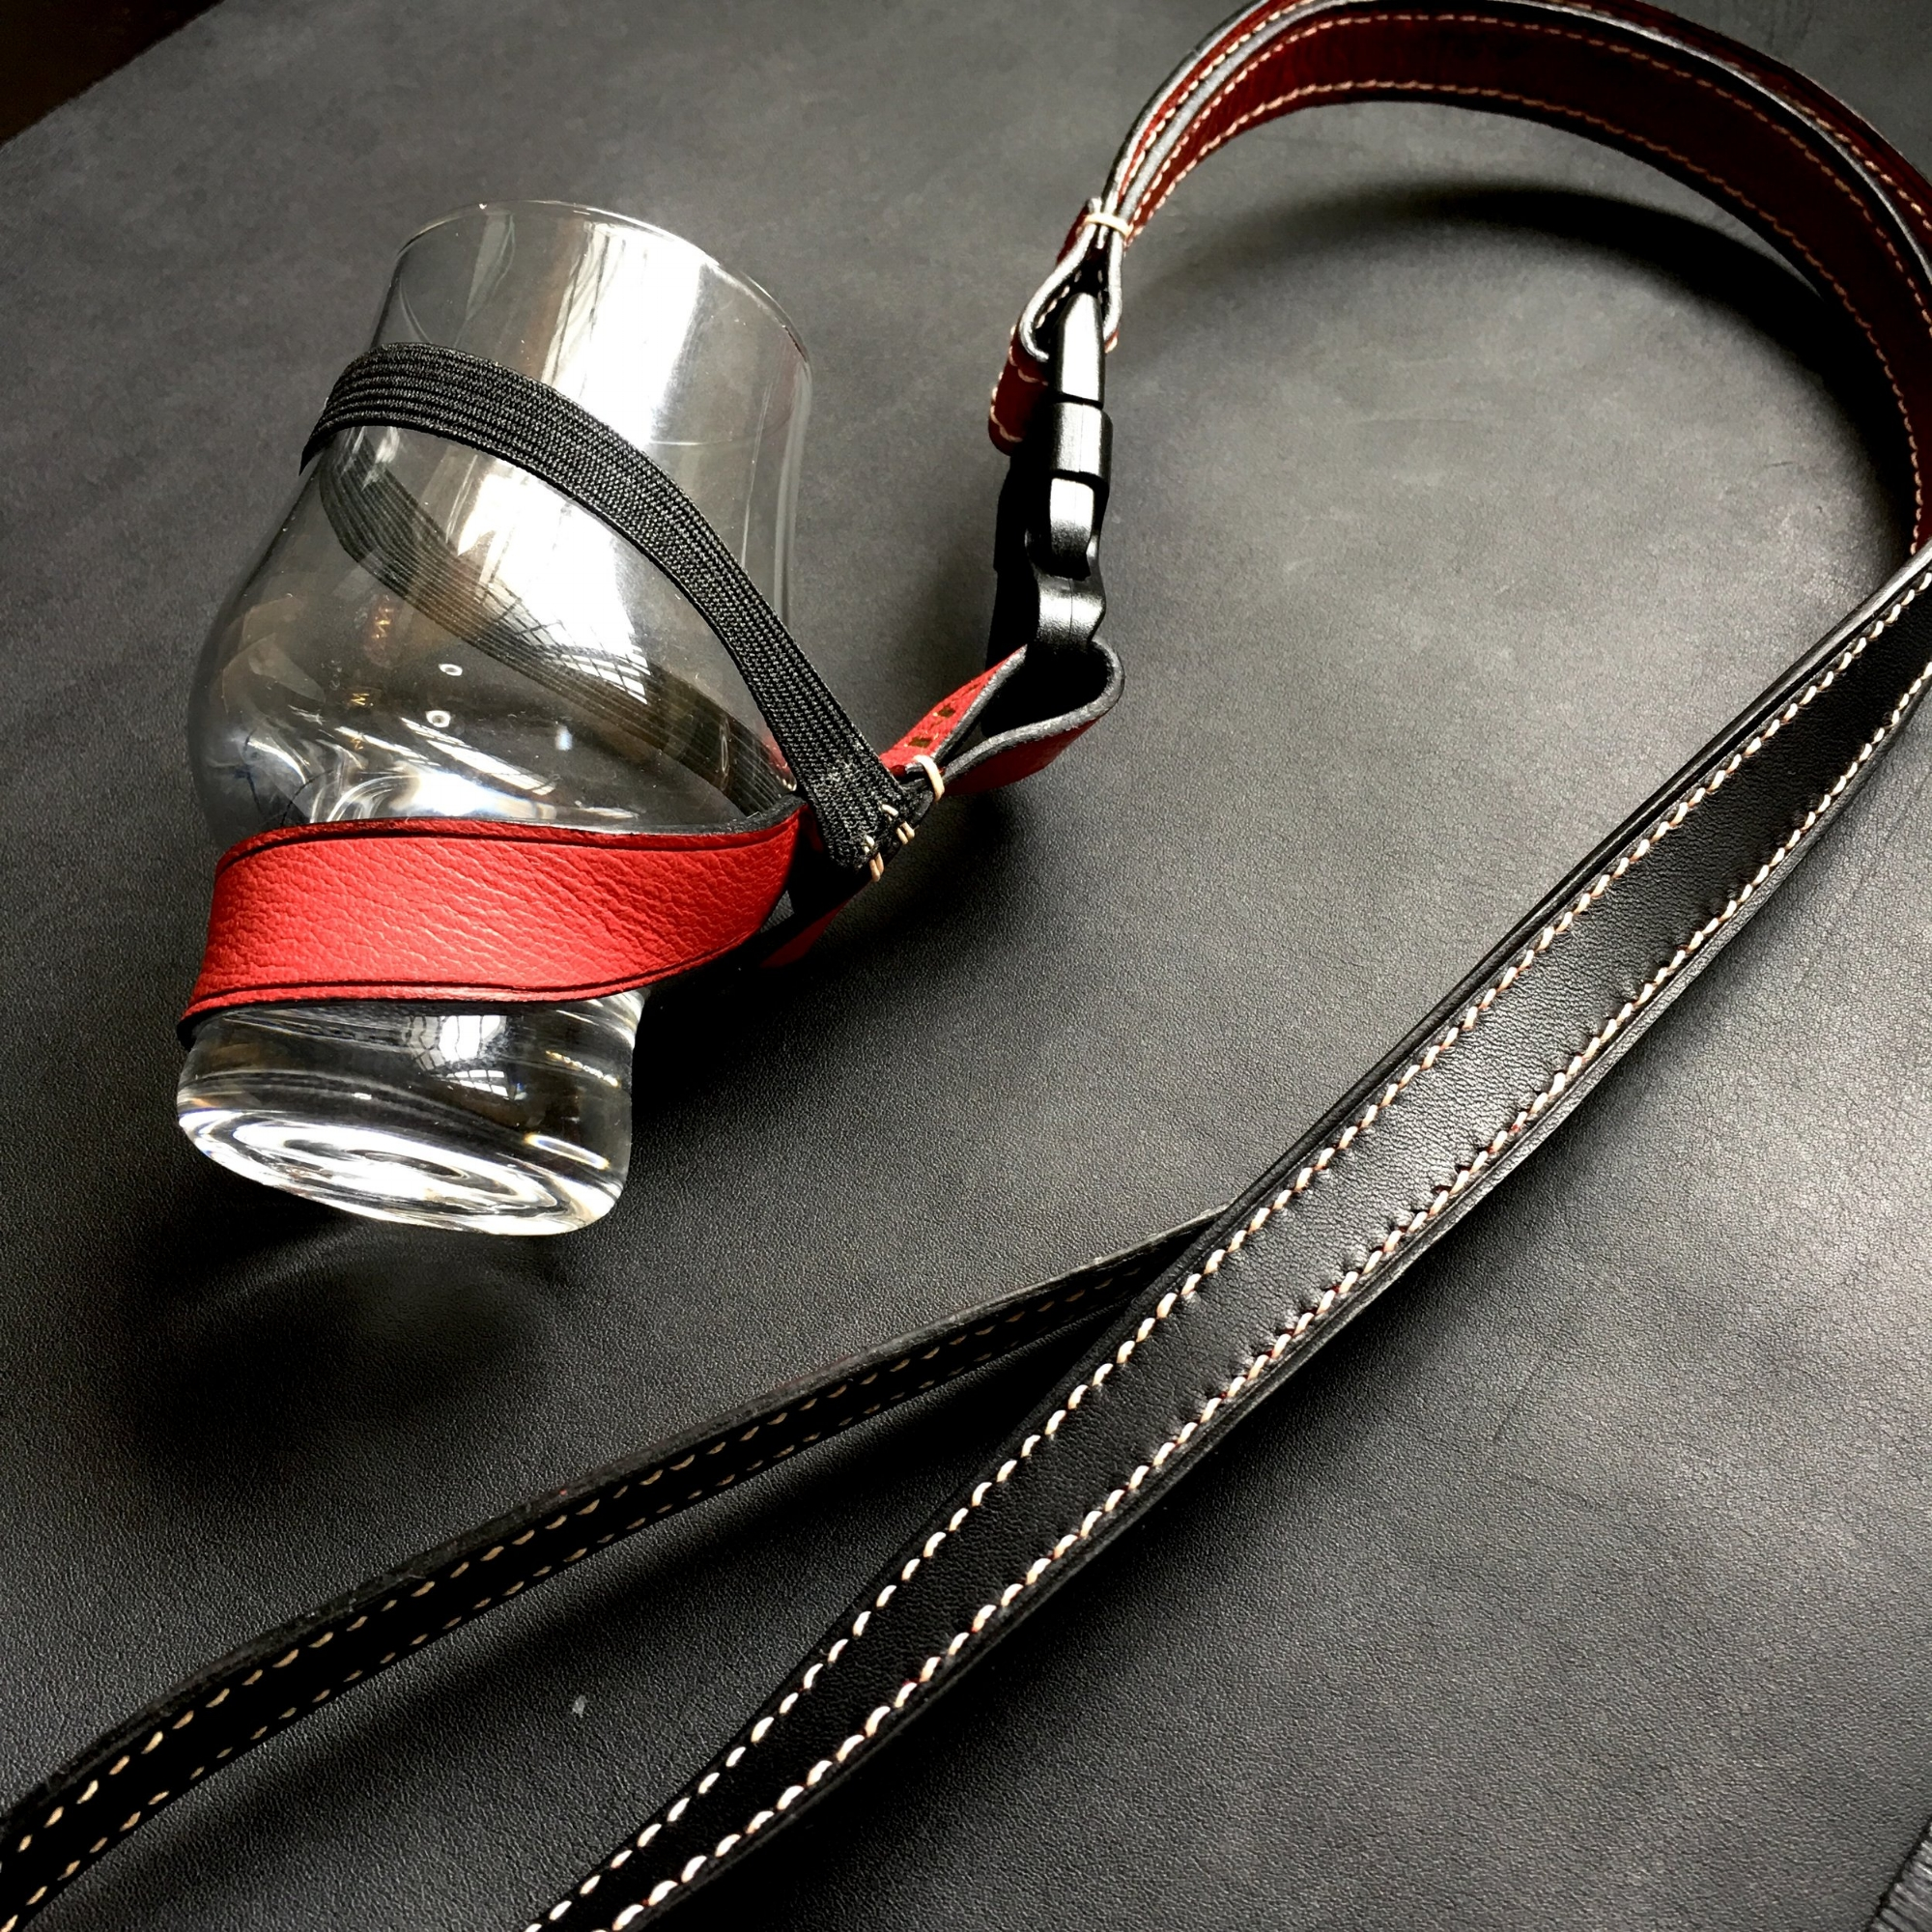 Bespoke Whiskey Glass Lanyard (Initials: J.W)